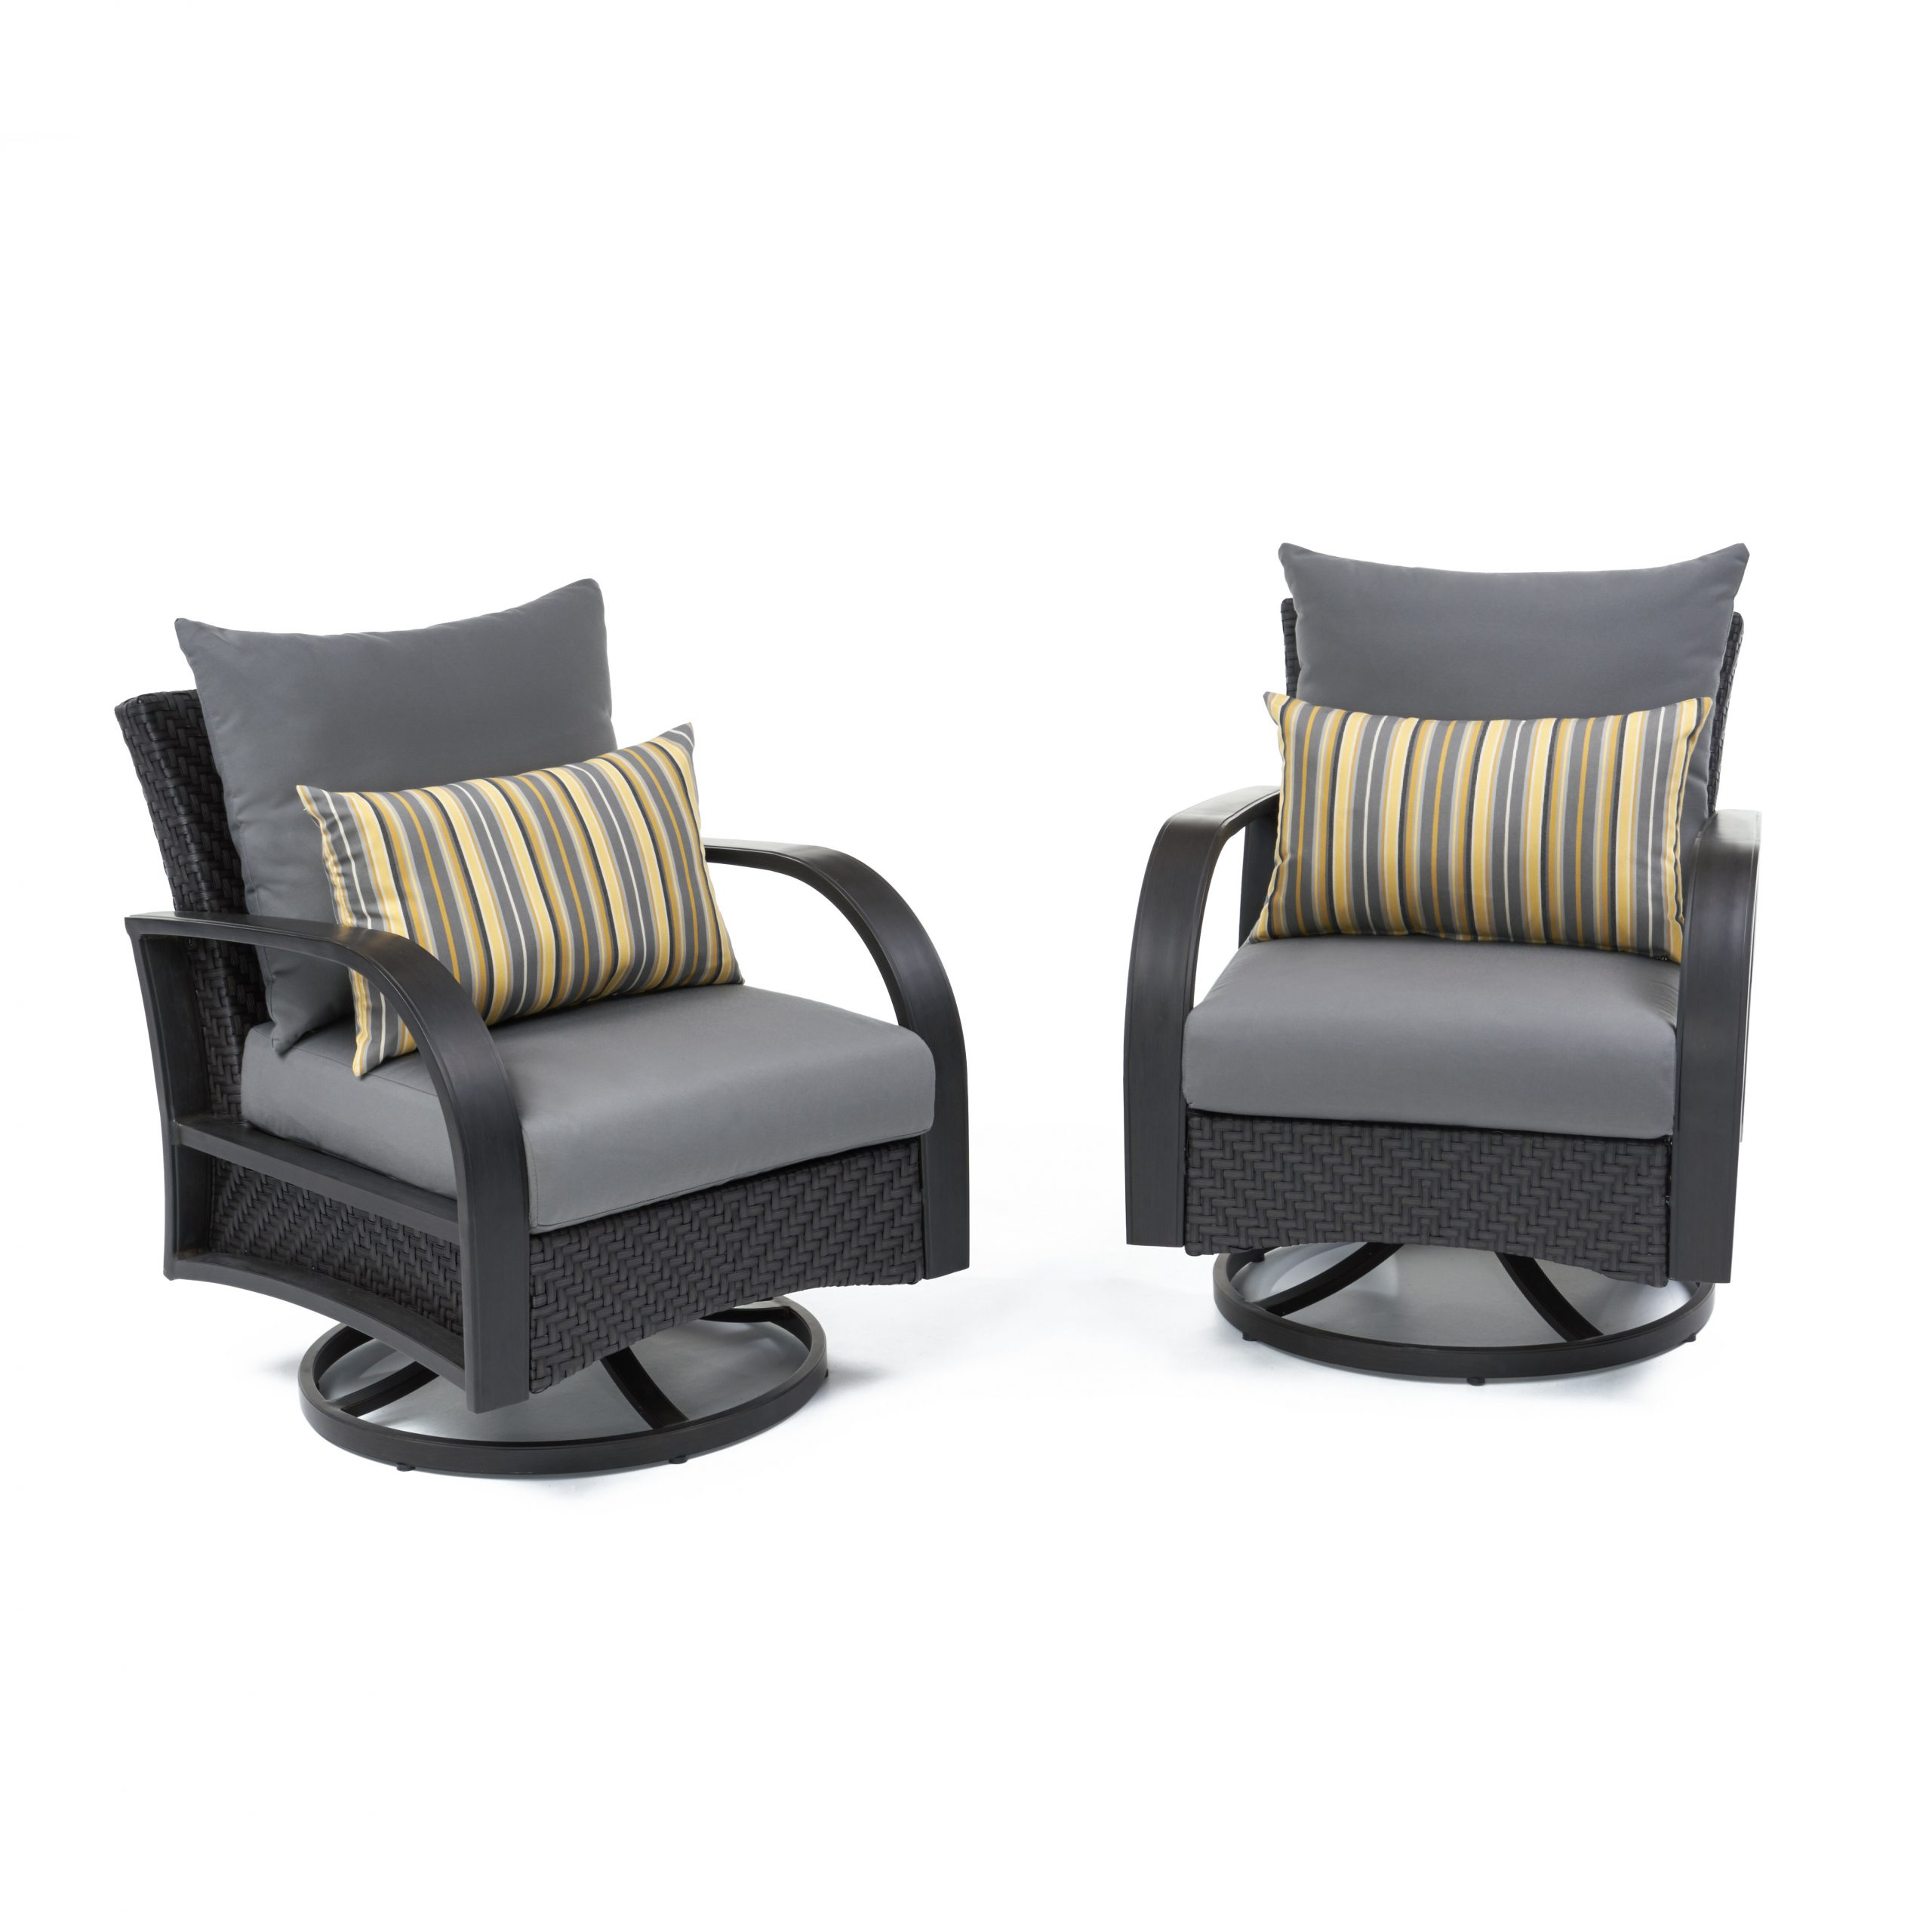 Fannin Patio Sofas With Cushions In Widely Used Cerralvo Swivel Patio Chair With Sunbrella Cushions (View 12 of 25)